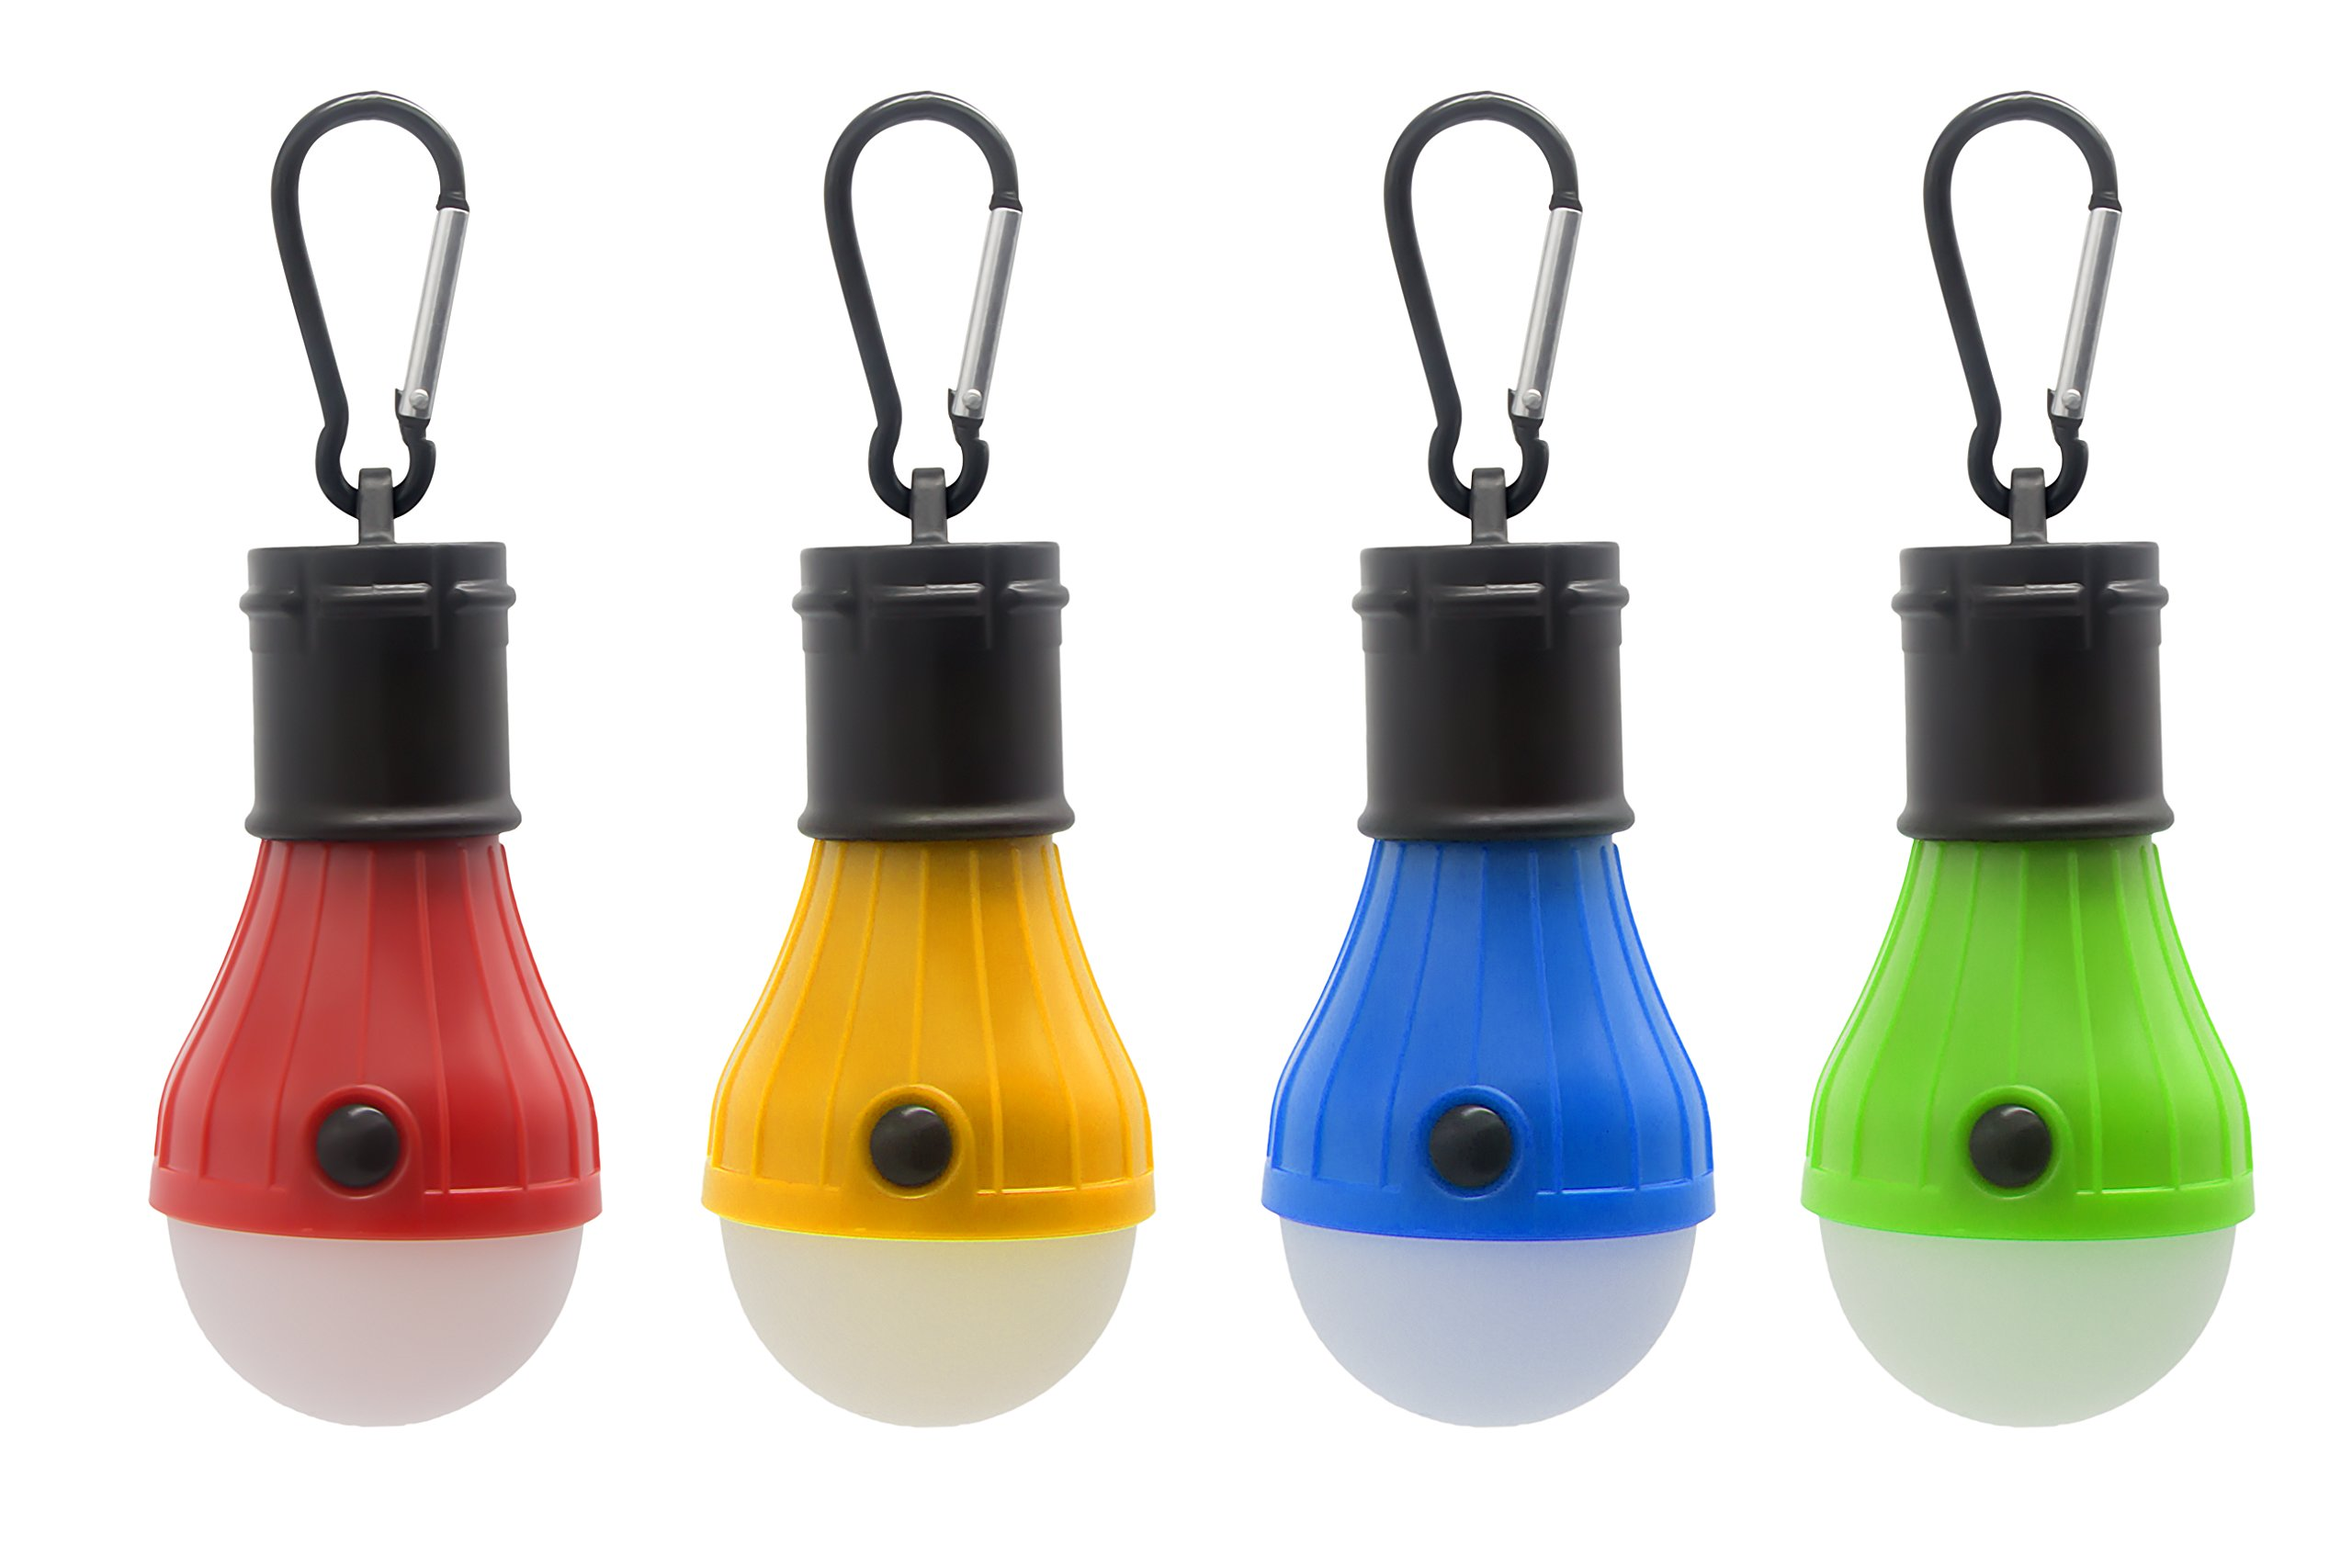 Mosion 4pc Hanging Lantern Camping Light Bulb Pack, Portable Battery-Operated Outdoor Tent Lamps with Carabiner Clip Hangers, High, Low & Flash Settings | No Fan & Solar (Red, Green, Blue & Yellow)